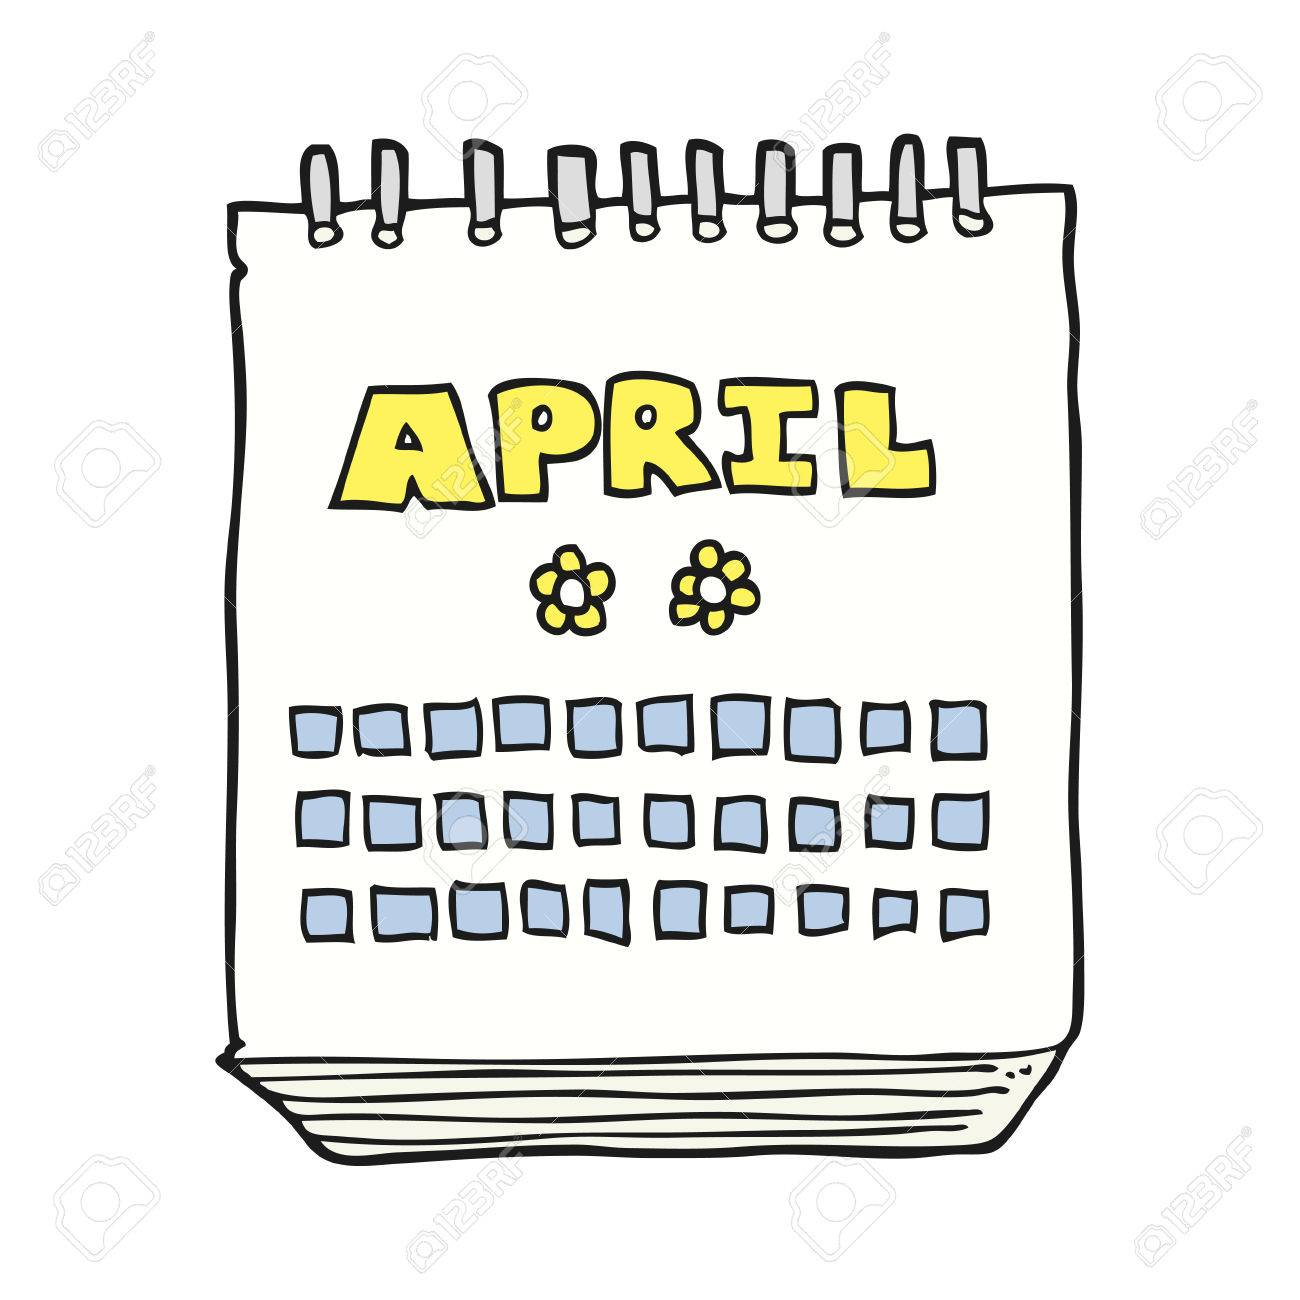 freehand drawn cartoon calendar showing month of April.